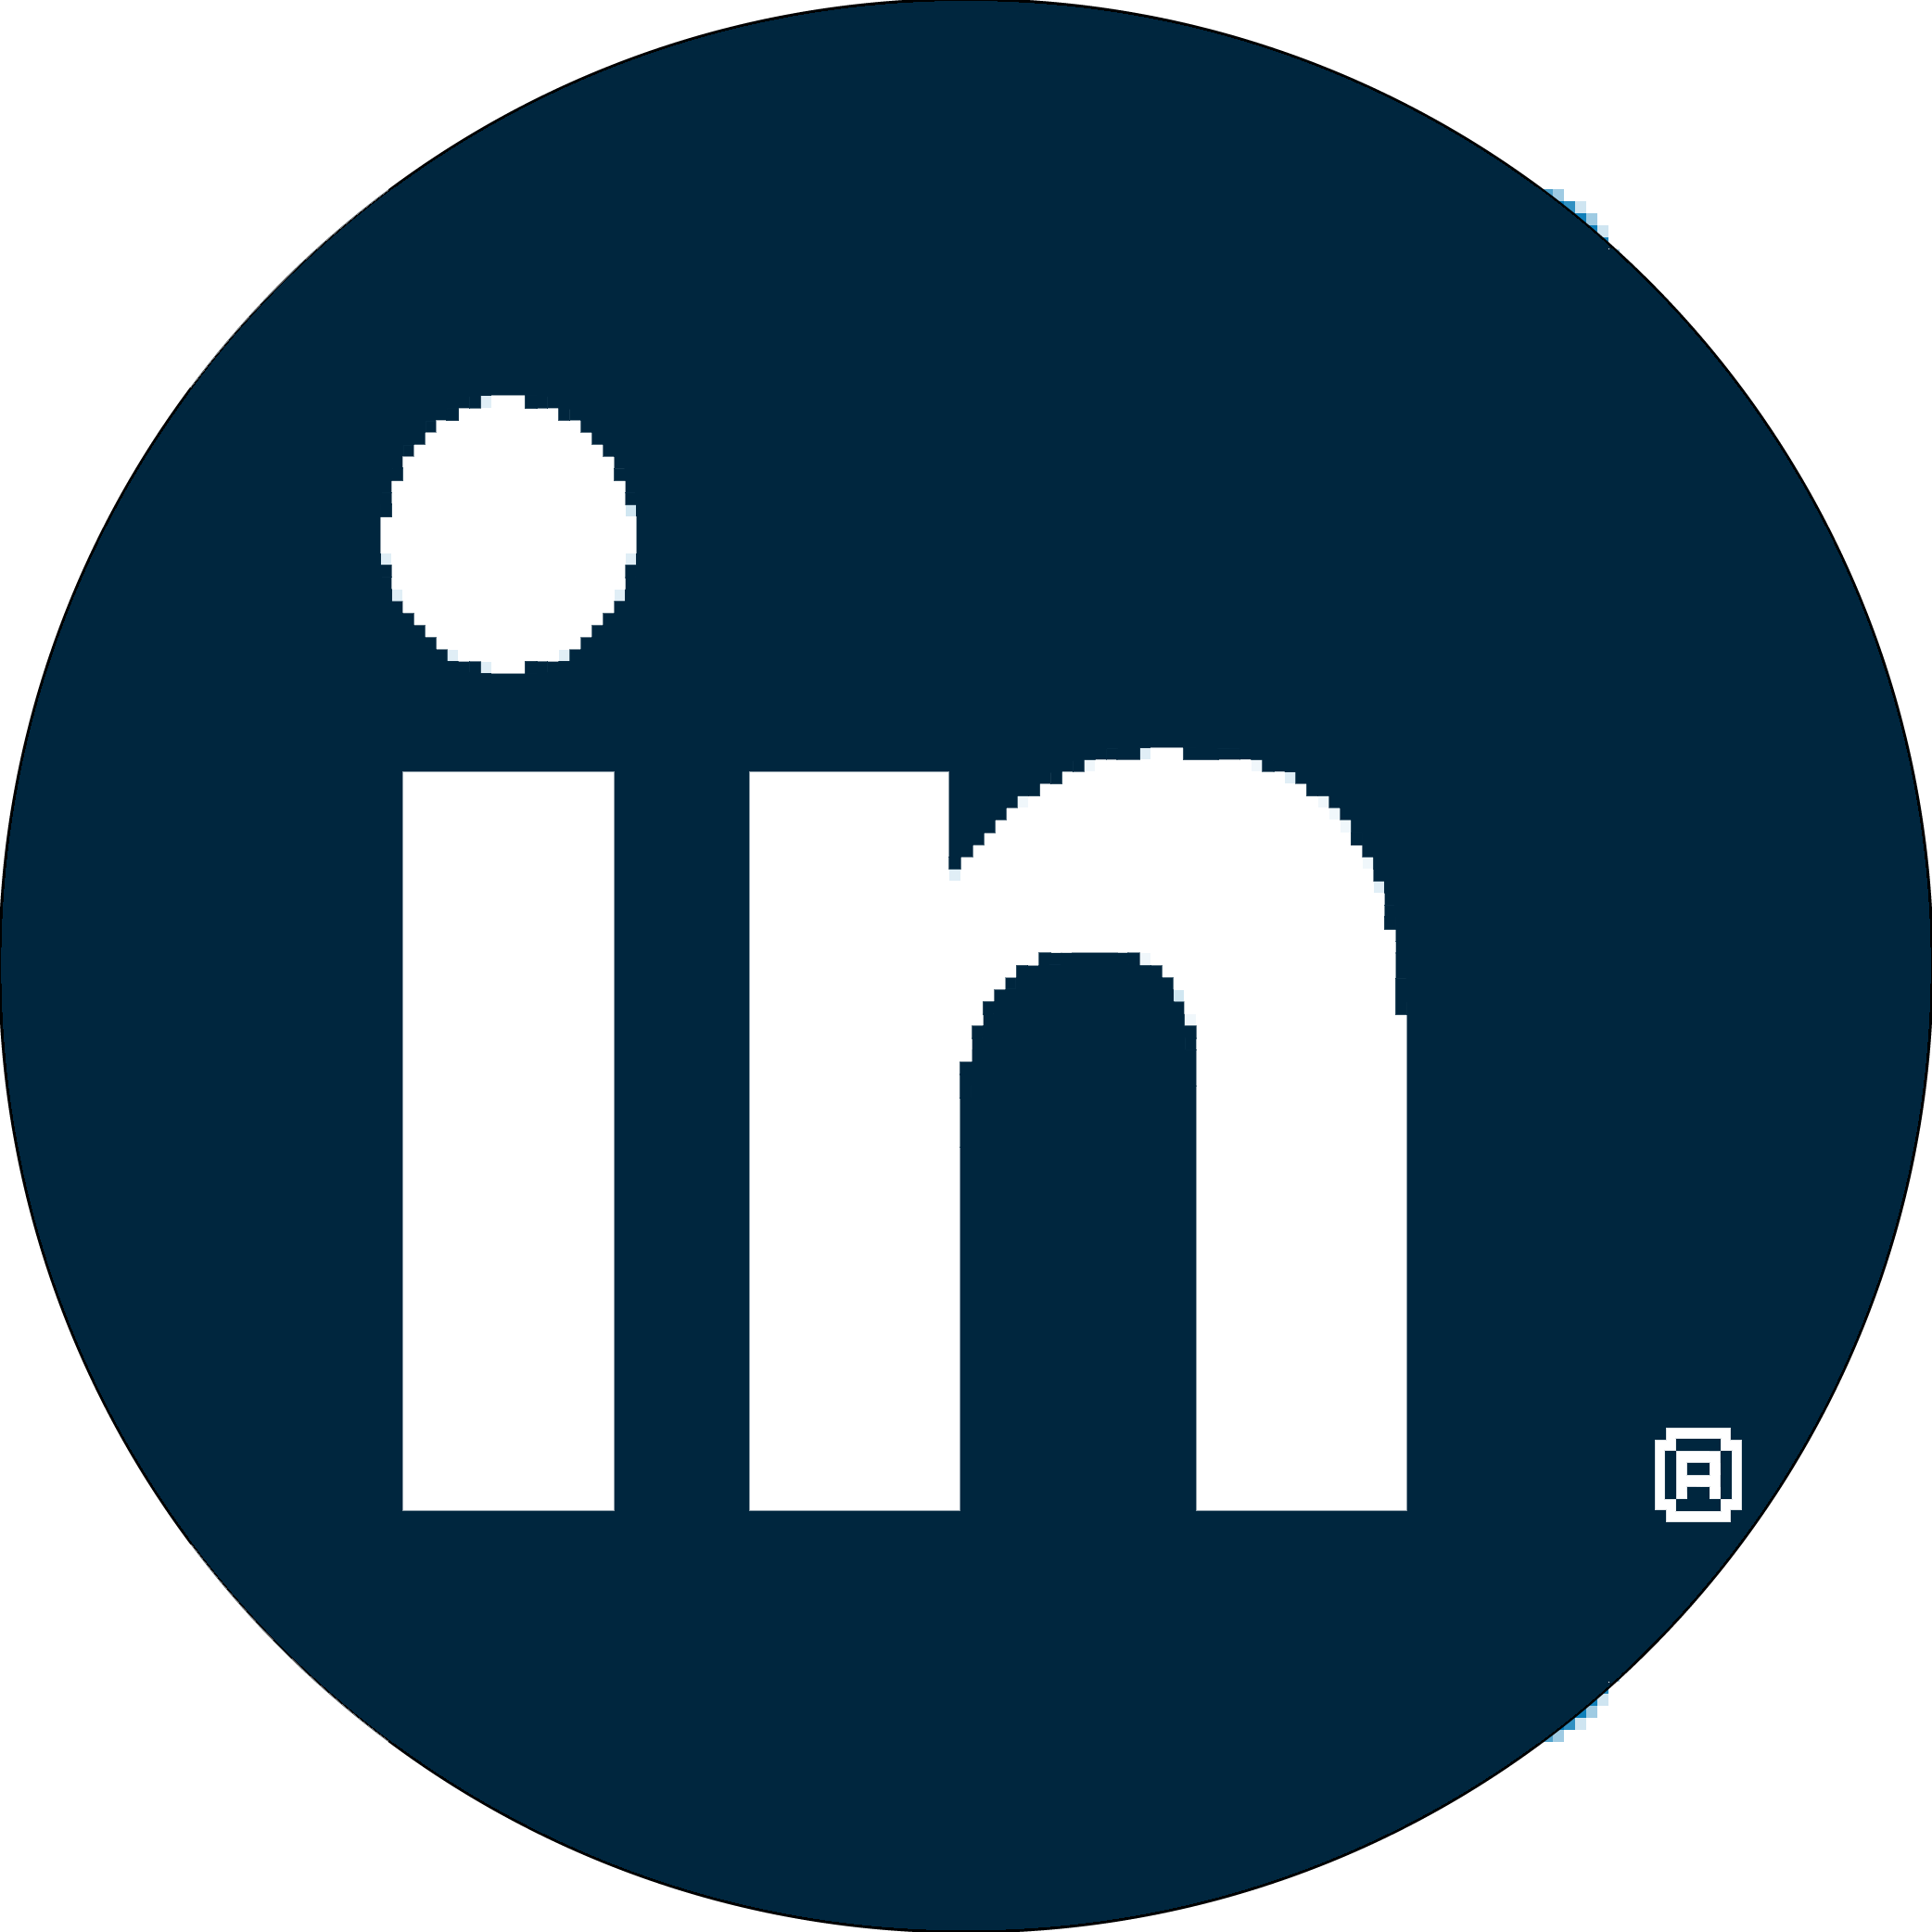 Connect with Scrivens on LinkedIn